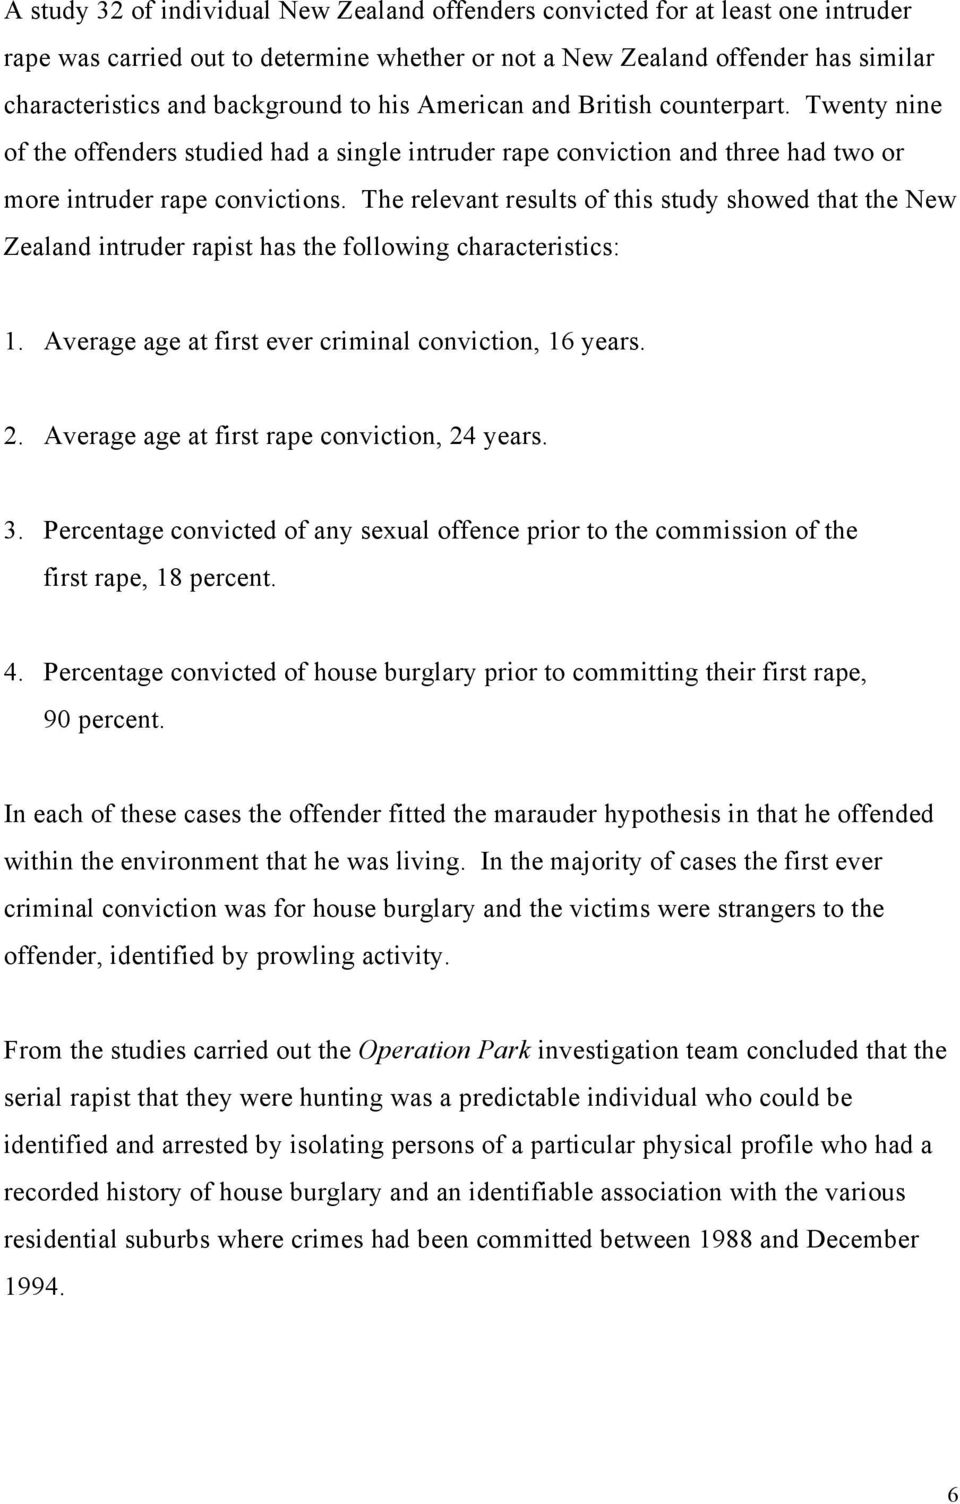 The relevant results of this study showed that the New Zealand intruder rapist has the following characteristics: 1. Average age at first ever criminal conviction, 16 years. 2.